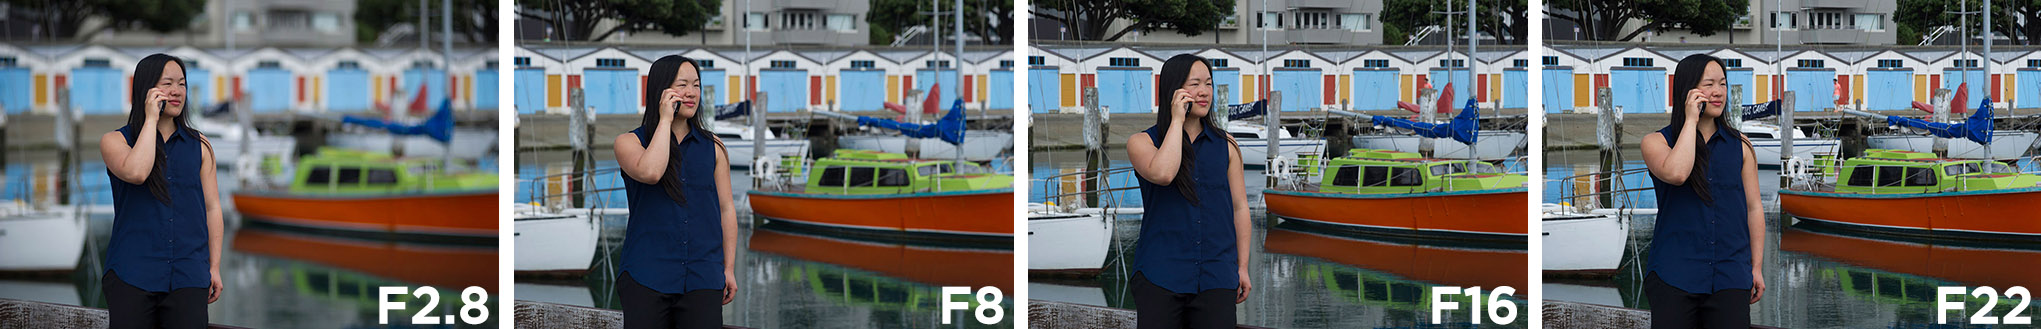 Four photographs taken with apertures from F2.8 to F22.